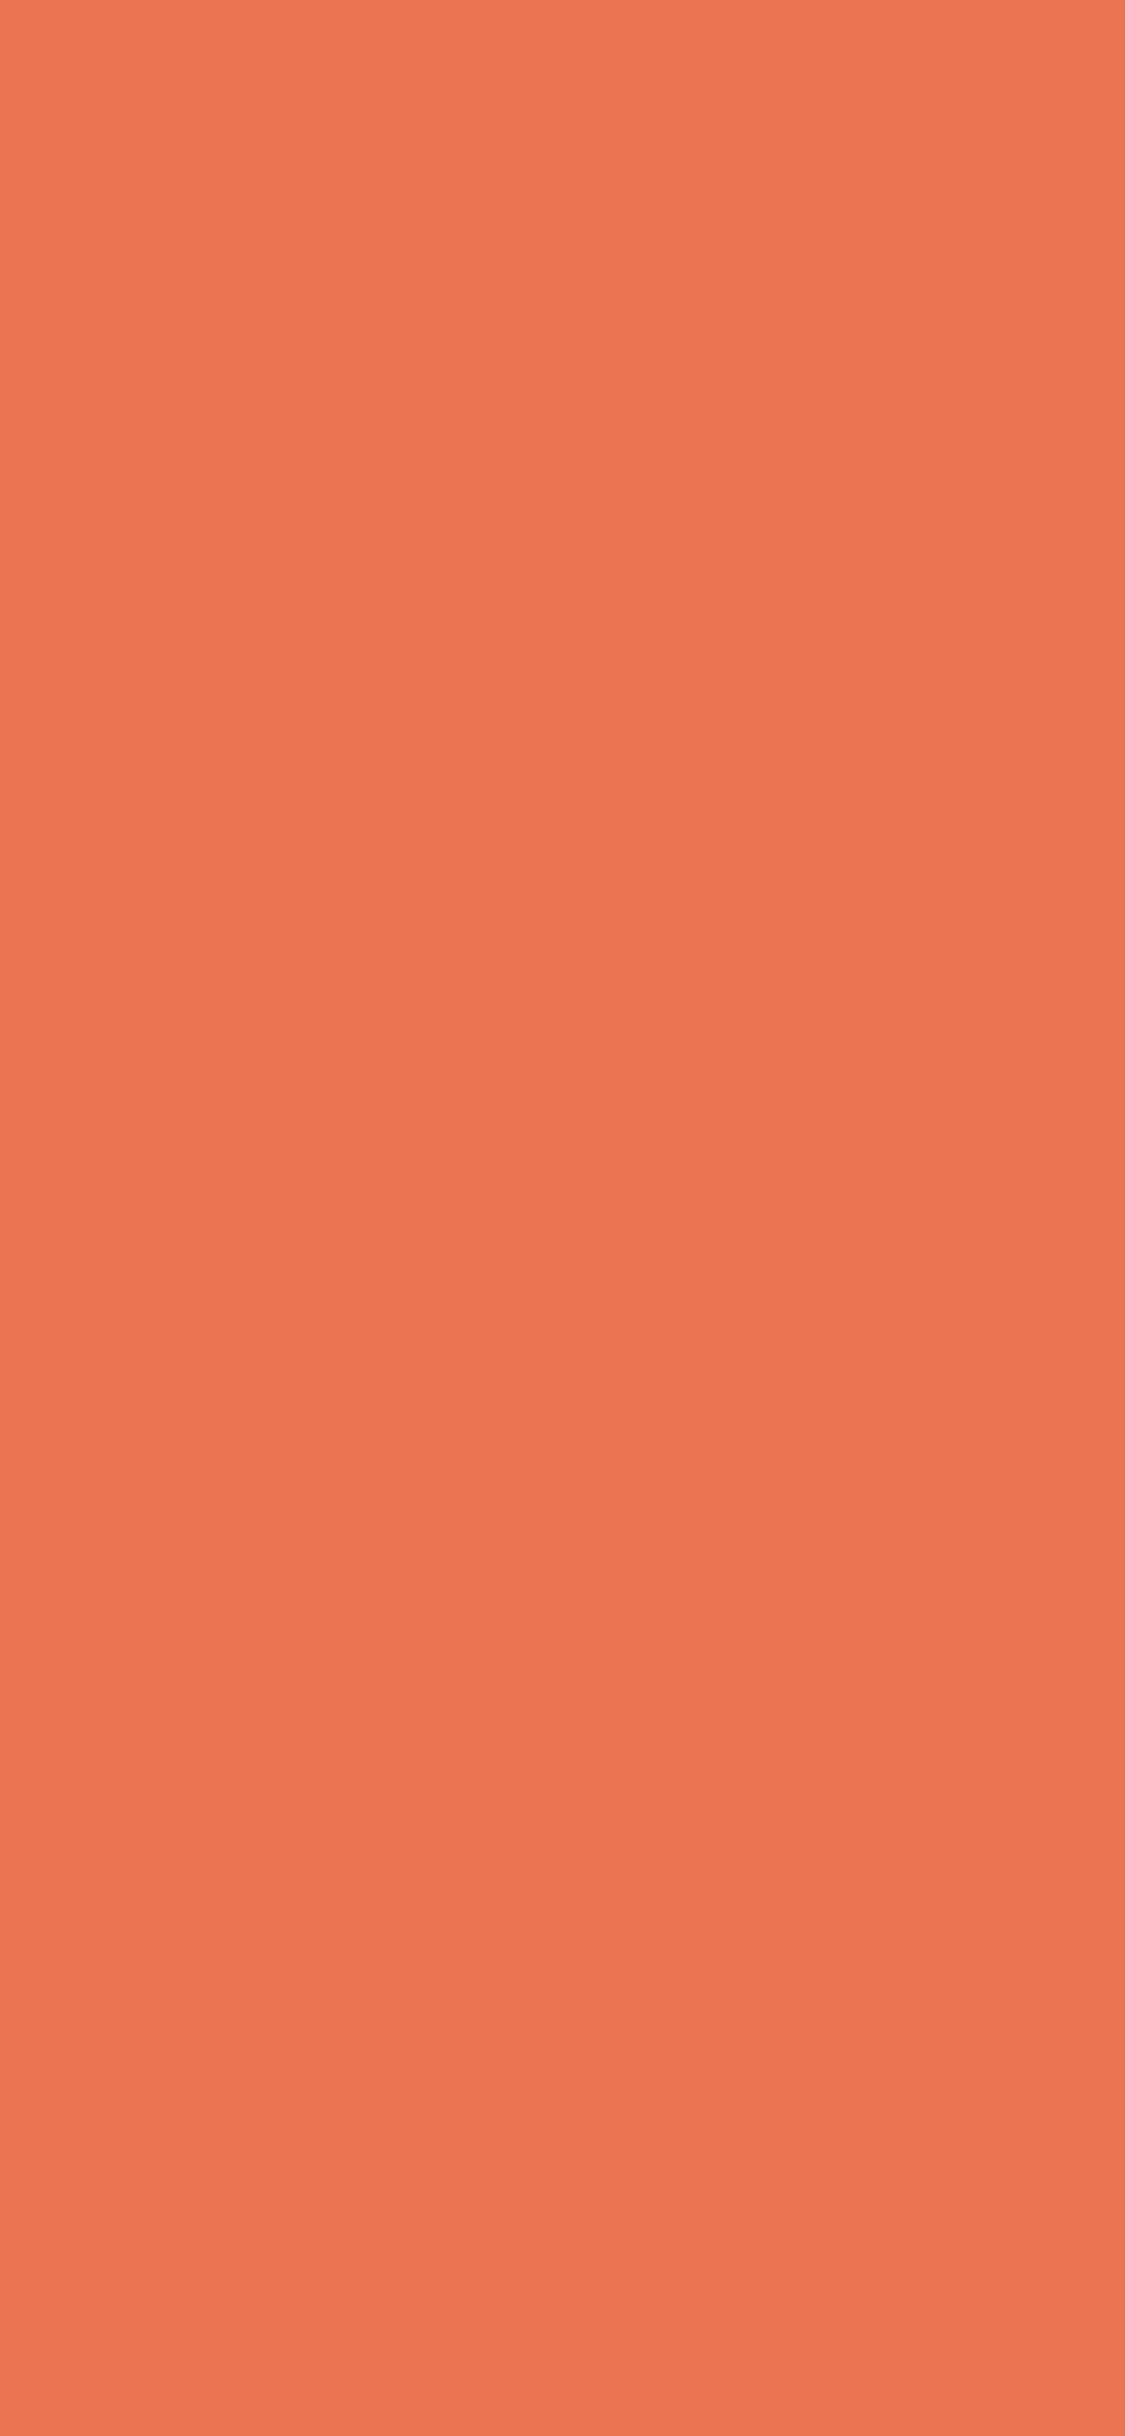 1125x2436 Burnt Sienna Solid Color Background